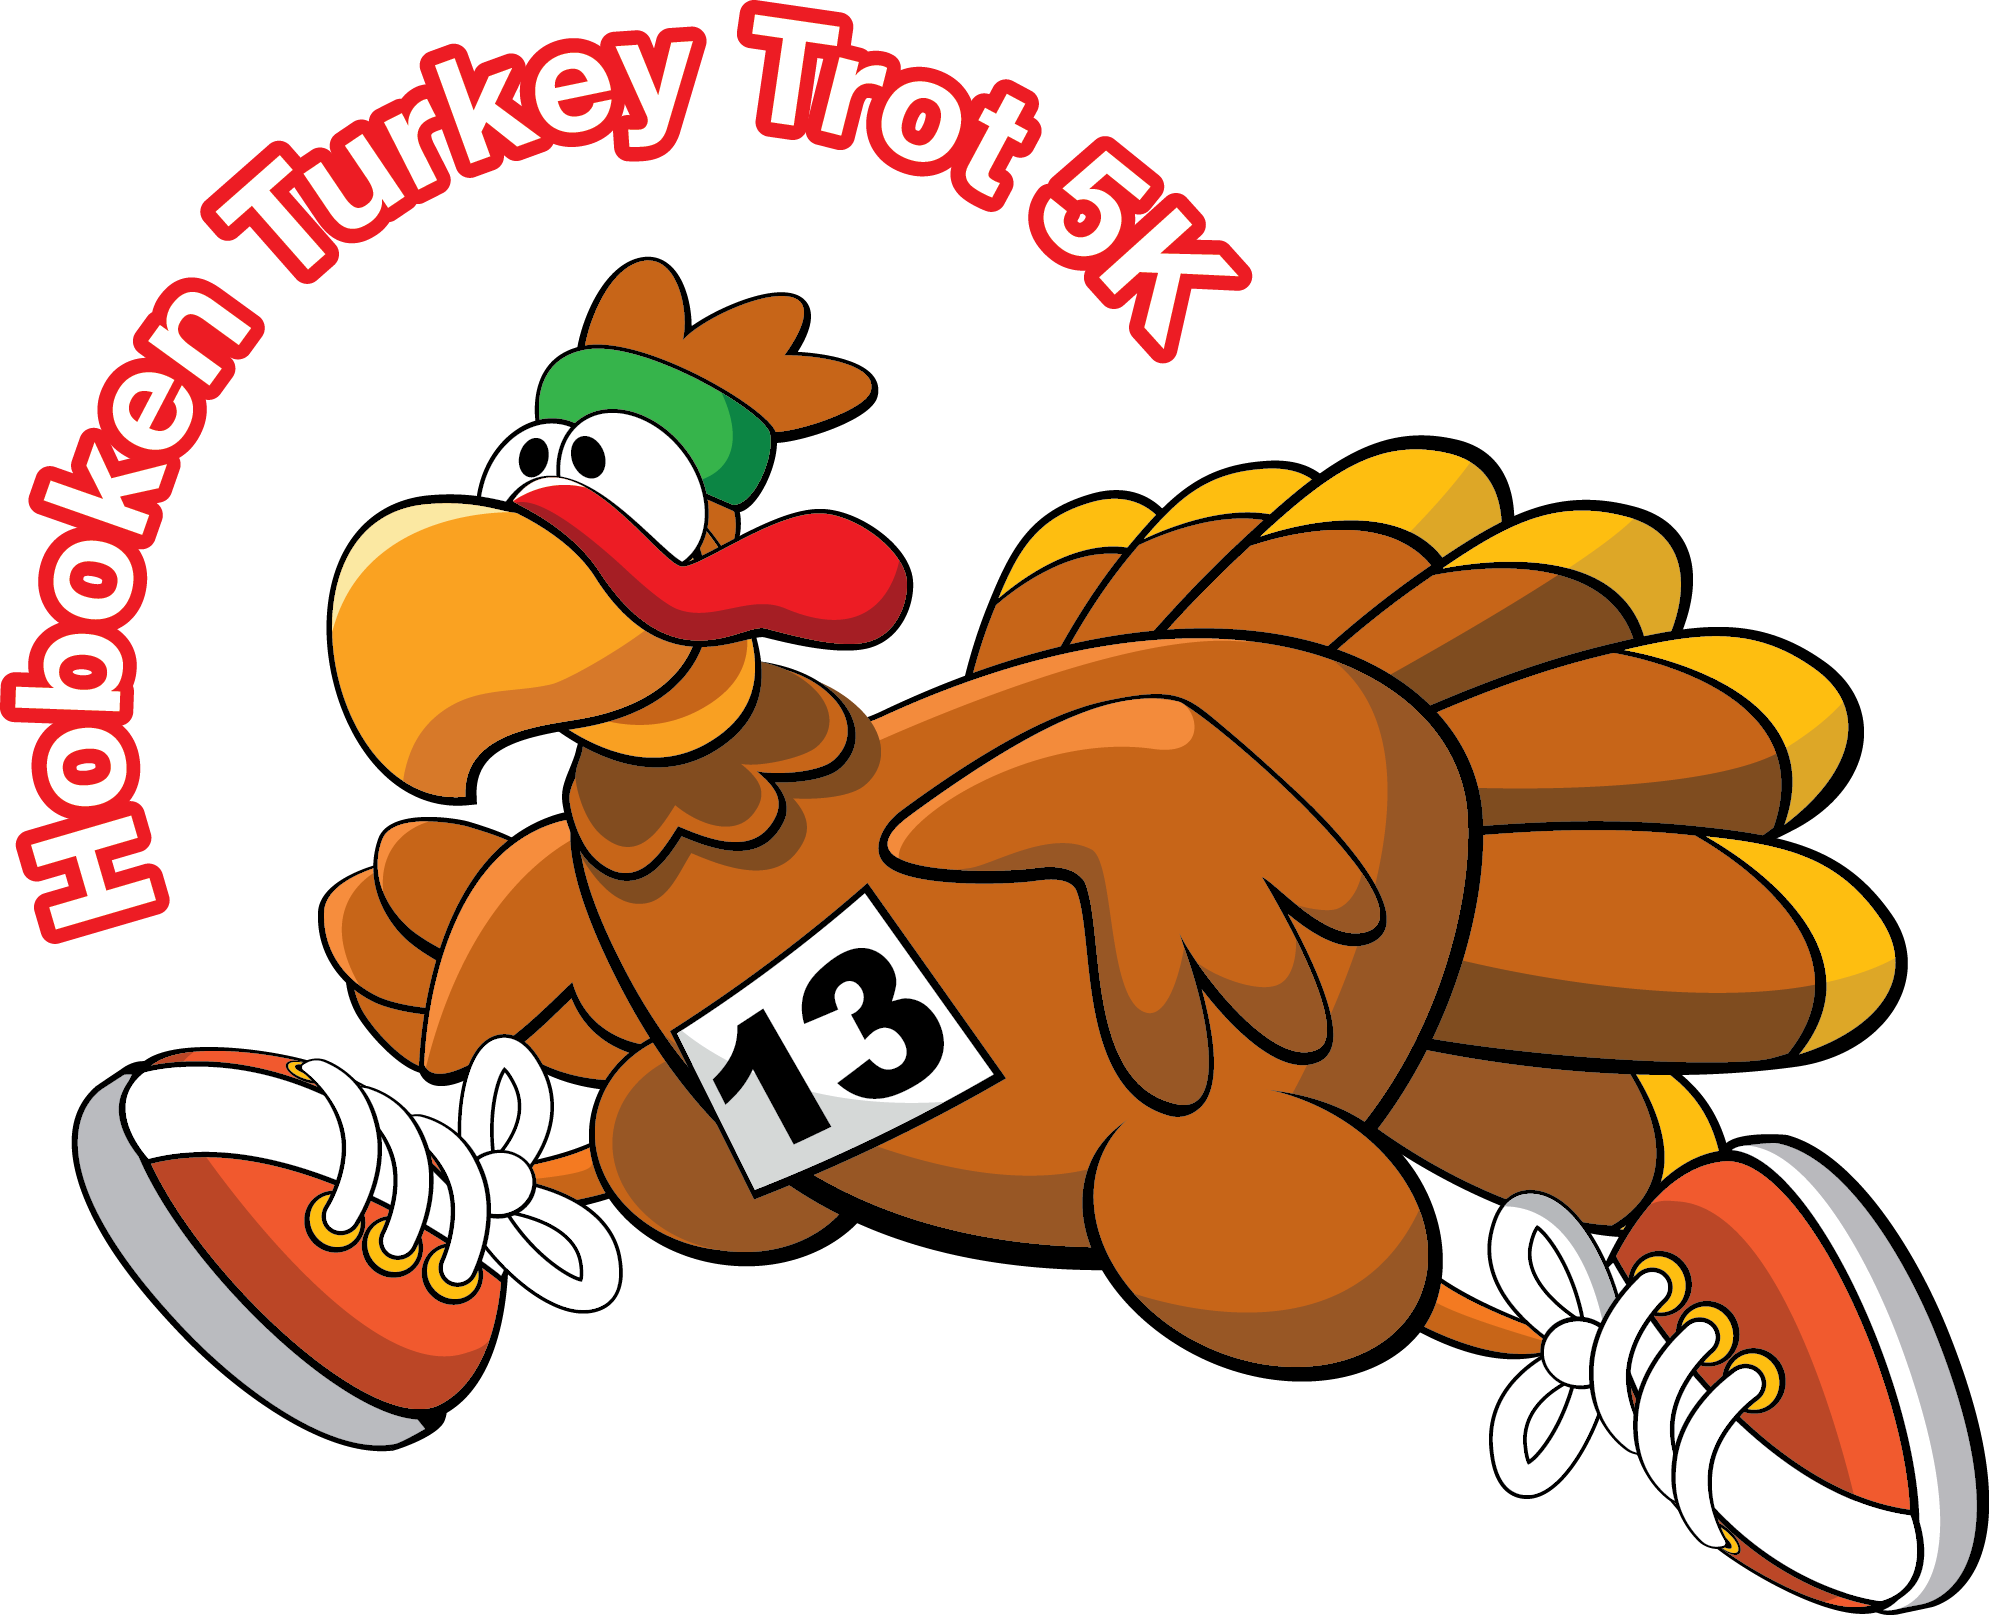 Third Annual Hoboken Turkey Trot